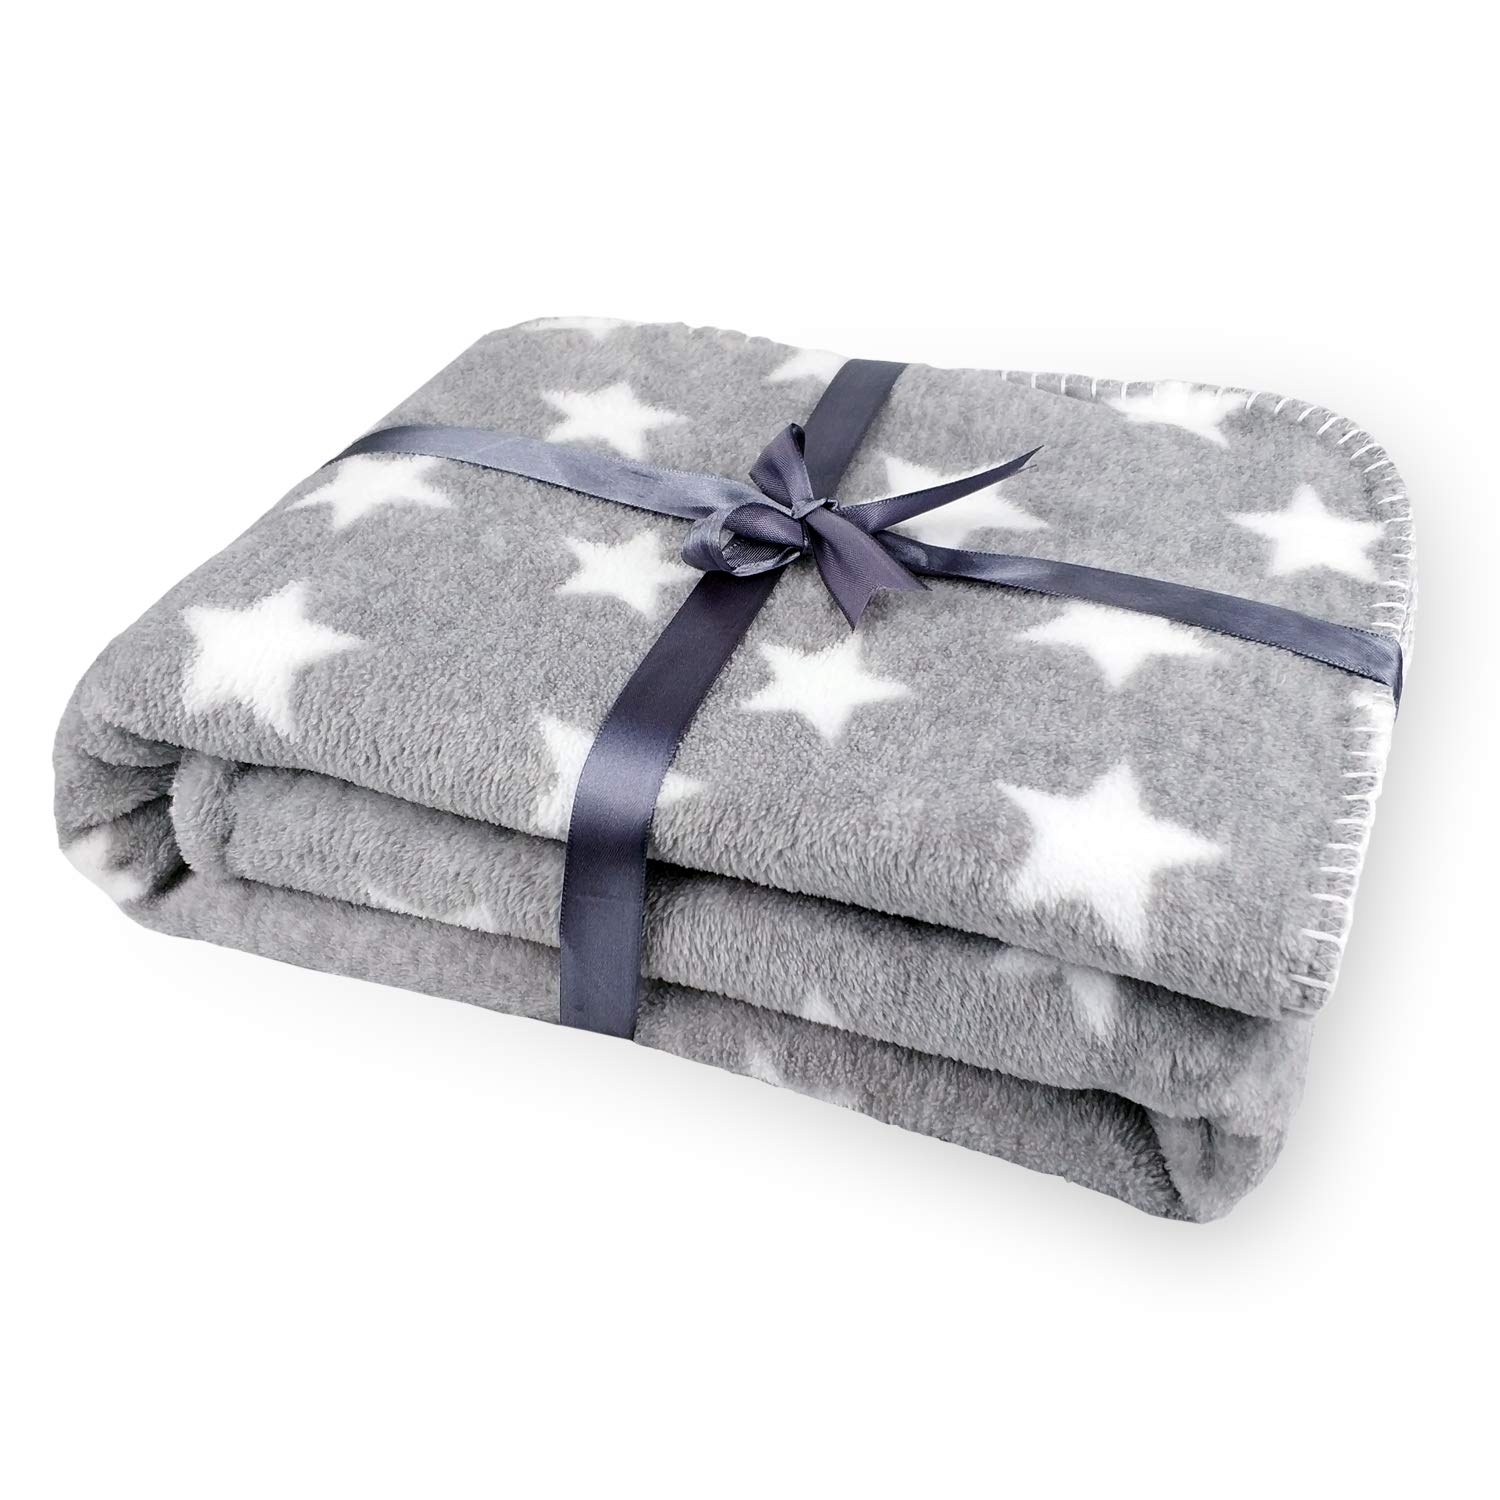 Luxury Thick Baby Flannel Blanket, 75 x 100cm Plush Extra Soft and Warm Fleece, Double Layers Infant Blanket for Pram or Crib Newborn (Grey Bear) Zebrum